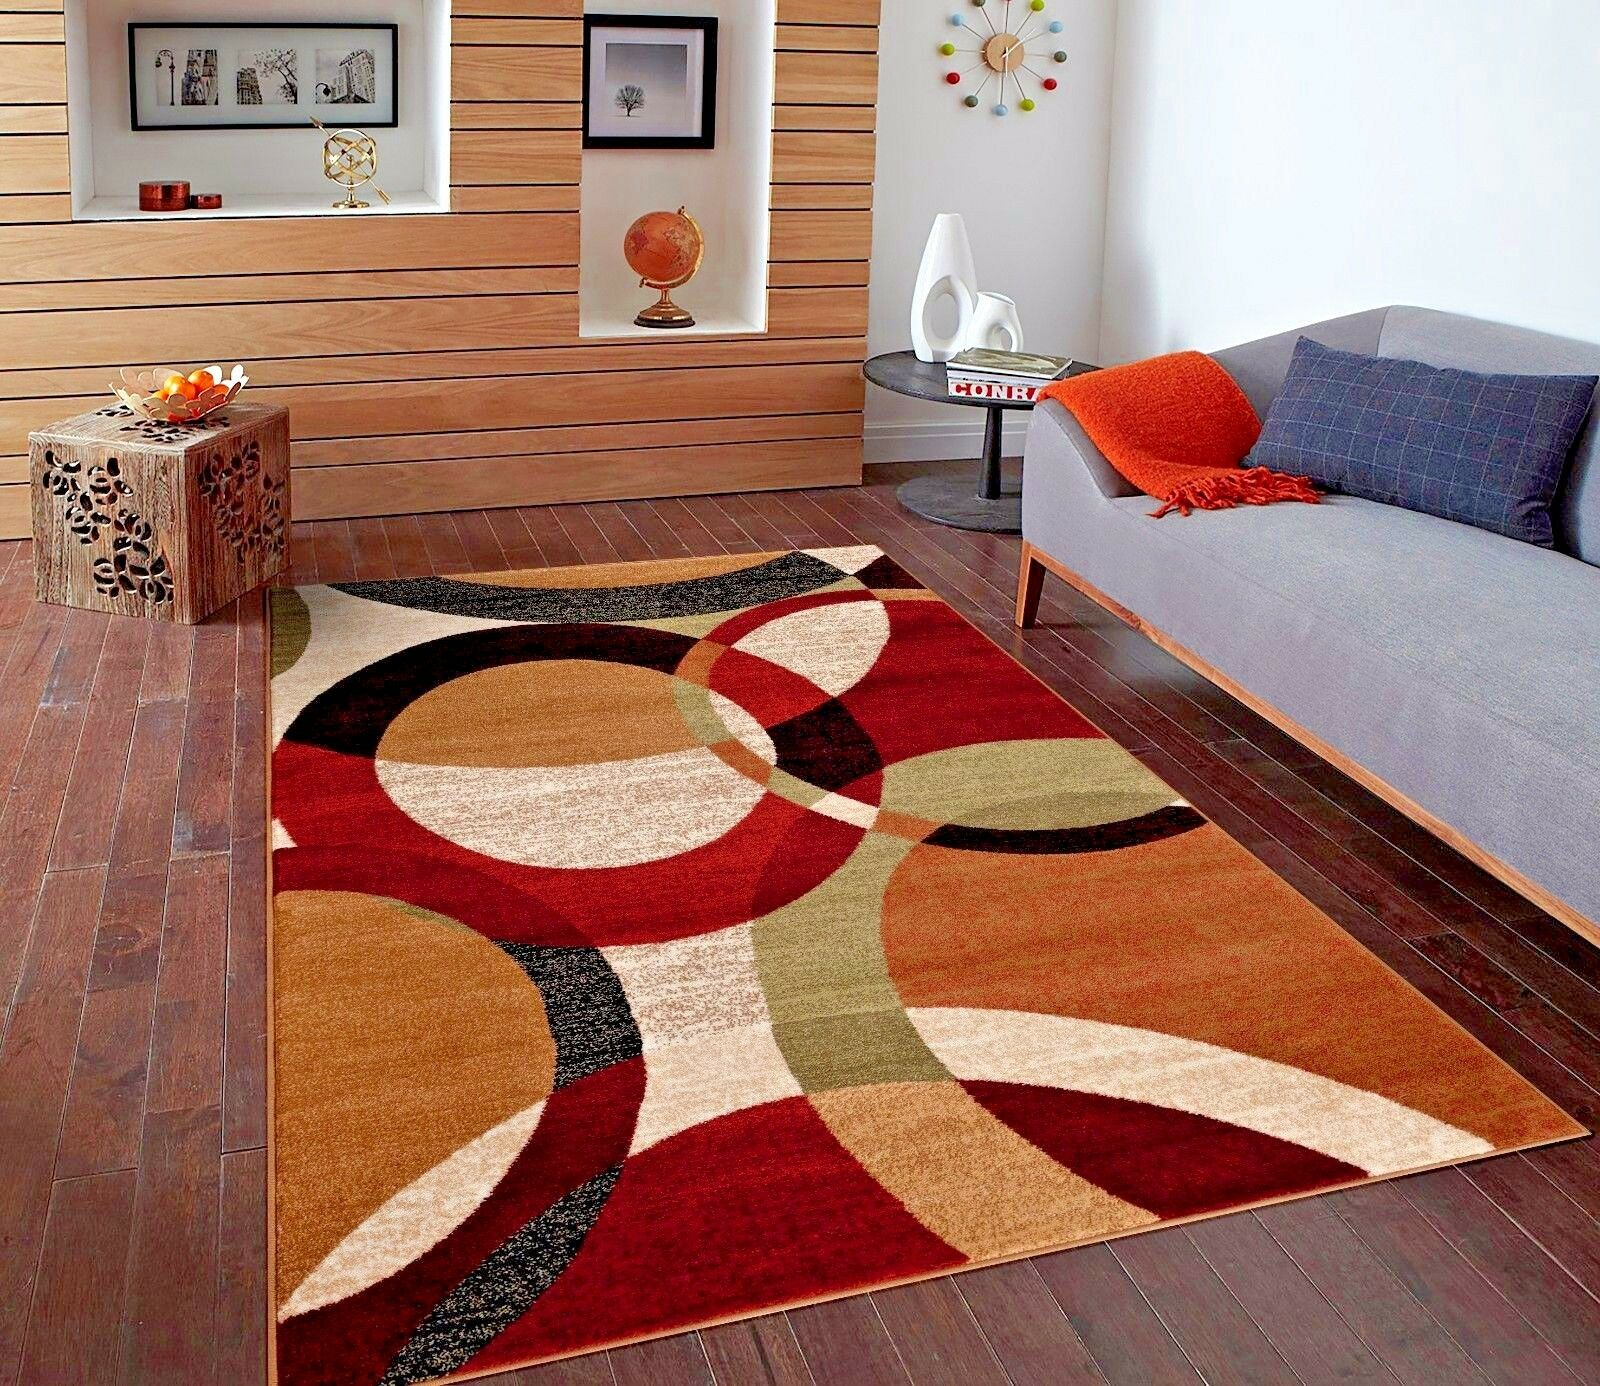 Rugs area rugs 5x7 area rug carpets modern large nice cool - Carpets for living room online india ...